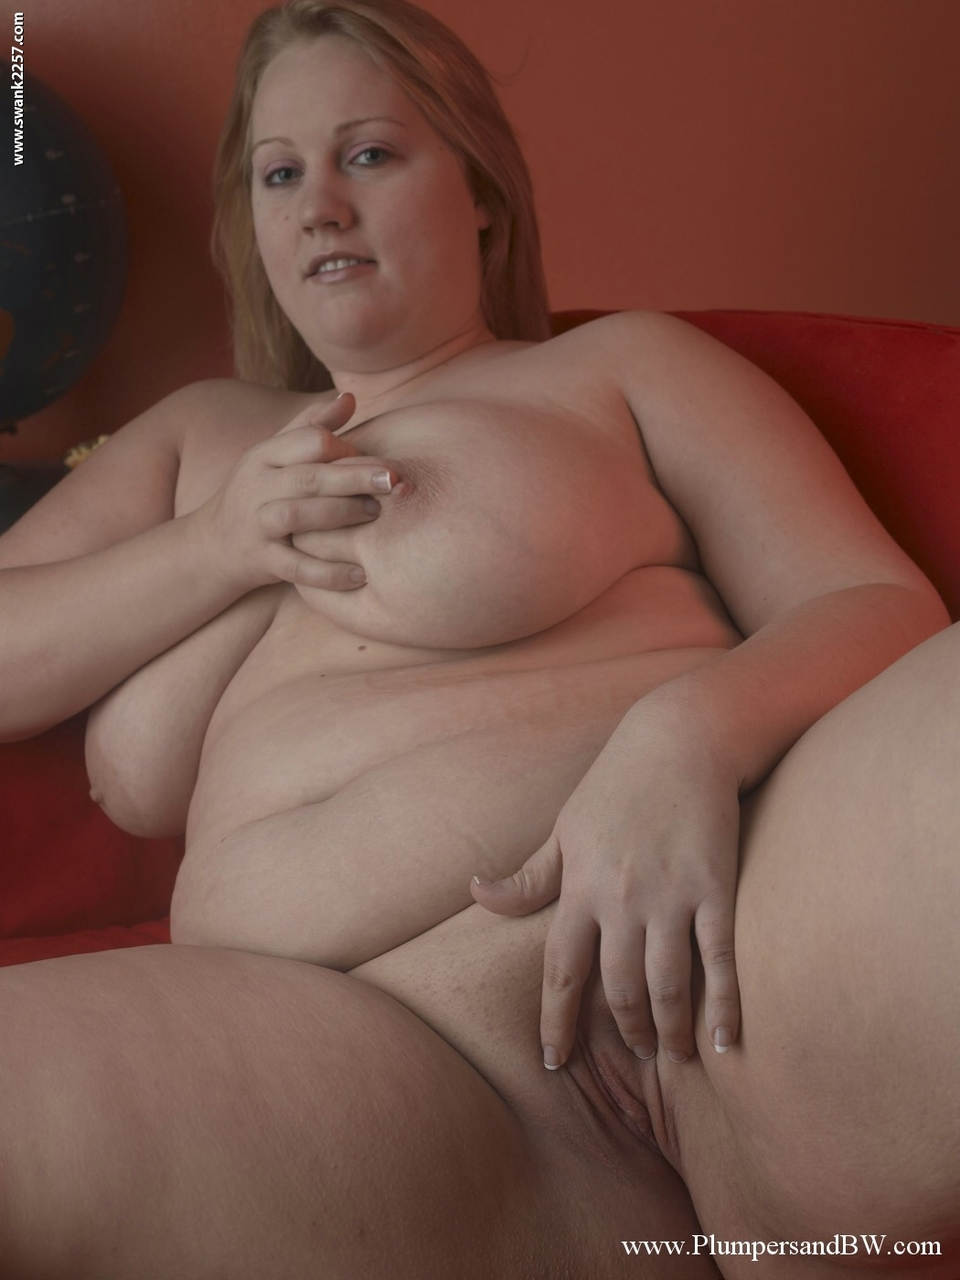 Fat girl pussy